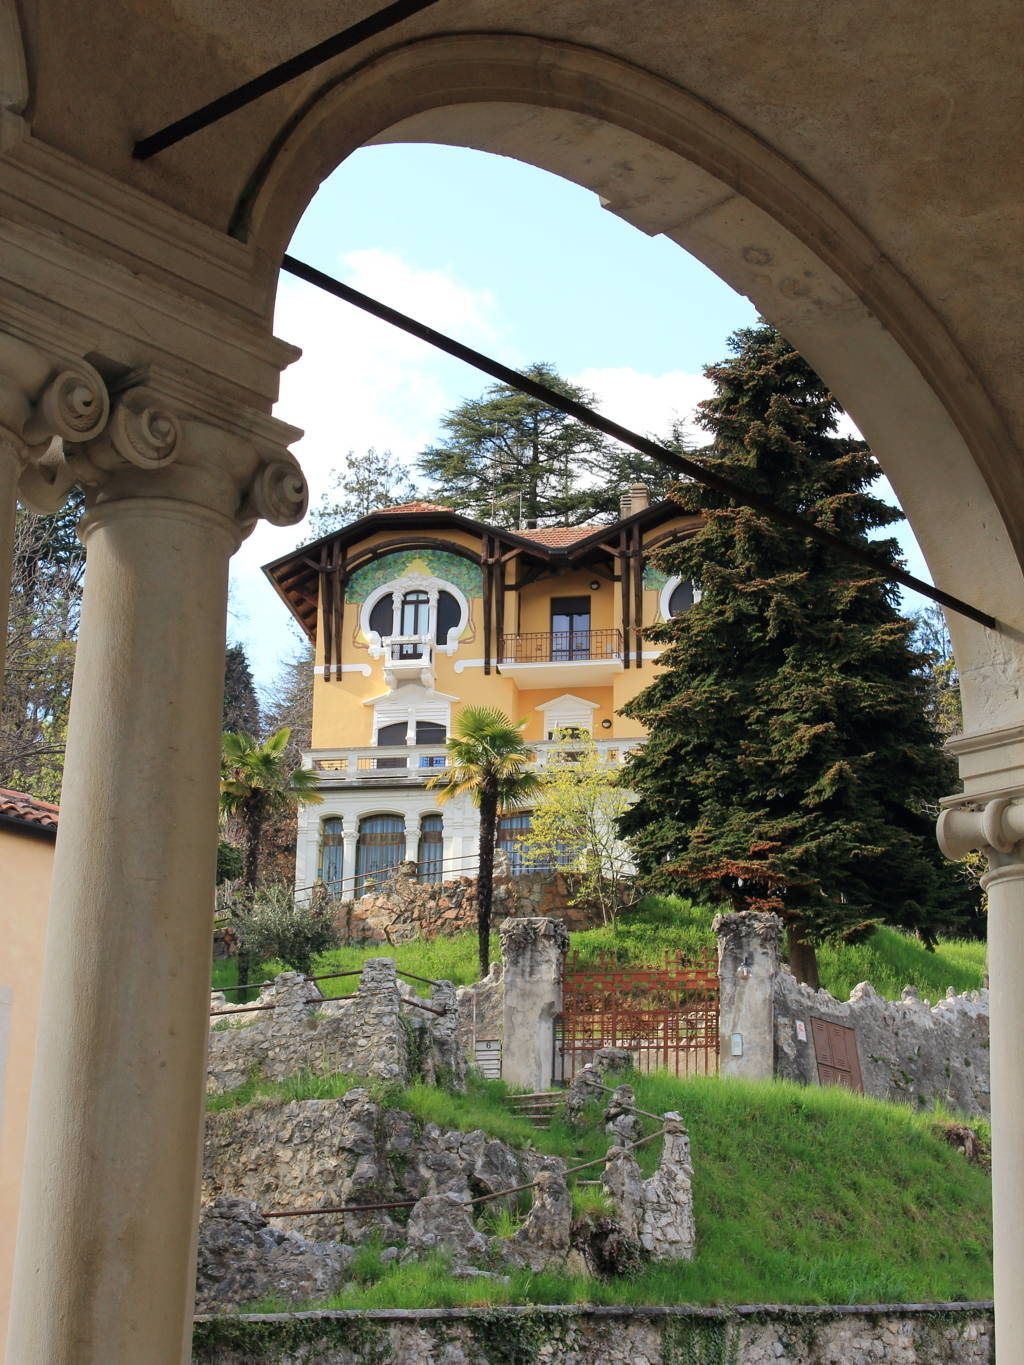 Sacro Monte Pittoresco